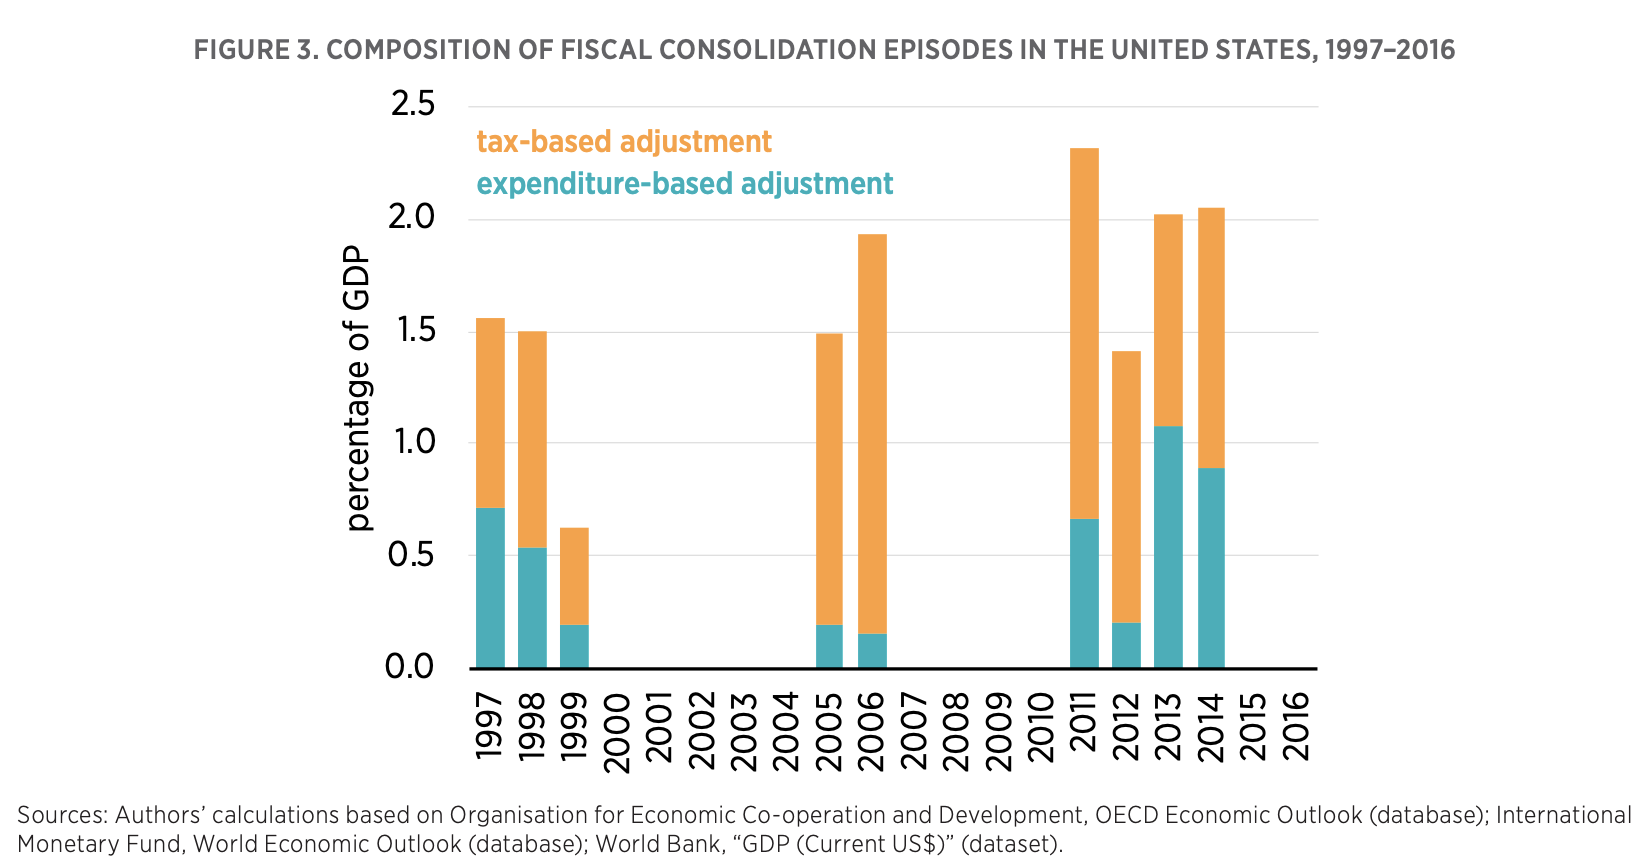 FIGURE 3. COMPOSITION OF FISCAL CONSOLIDATION EPISODES IN THE UNITED STATES, 1997–2016